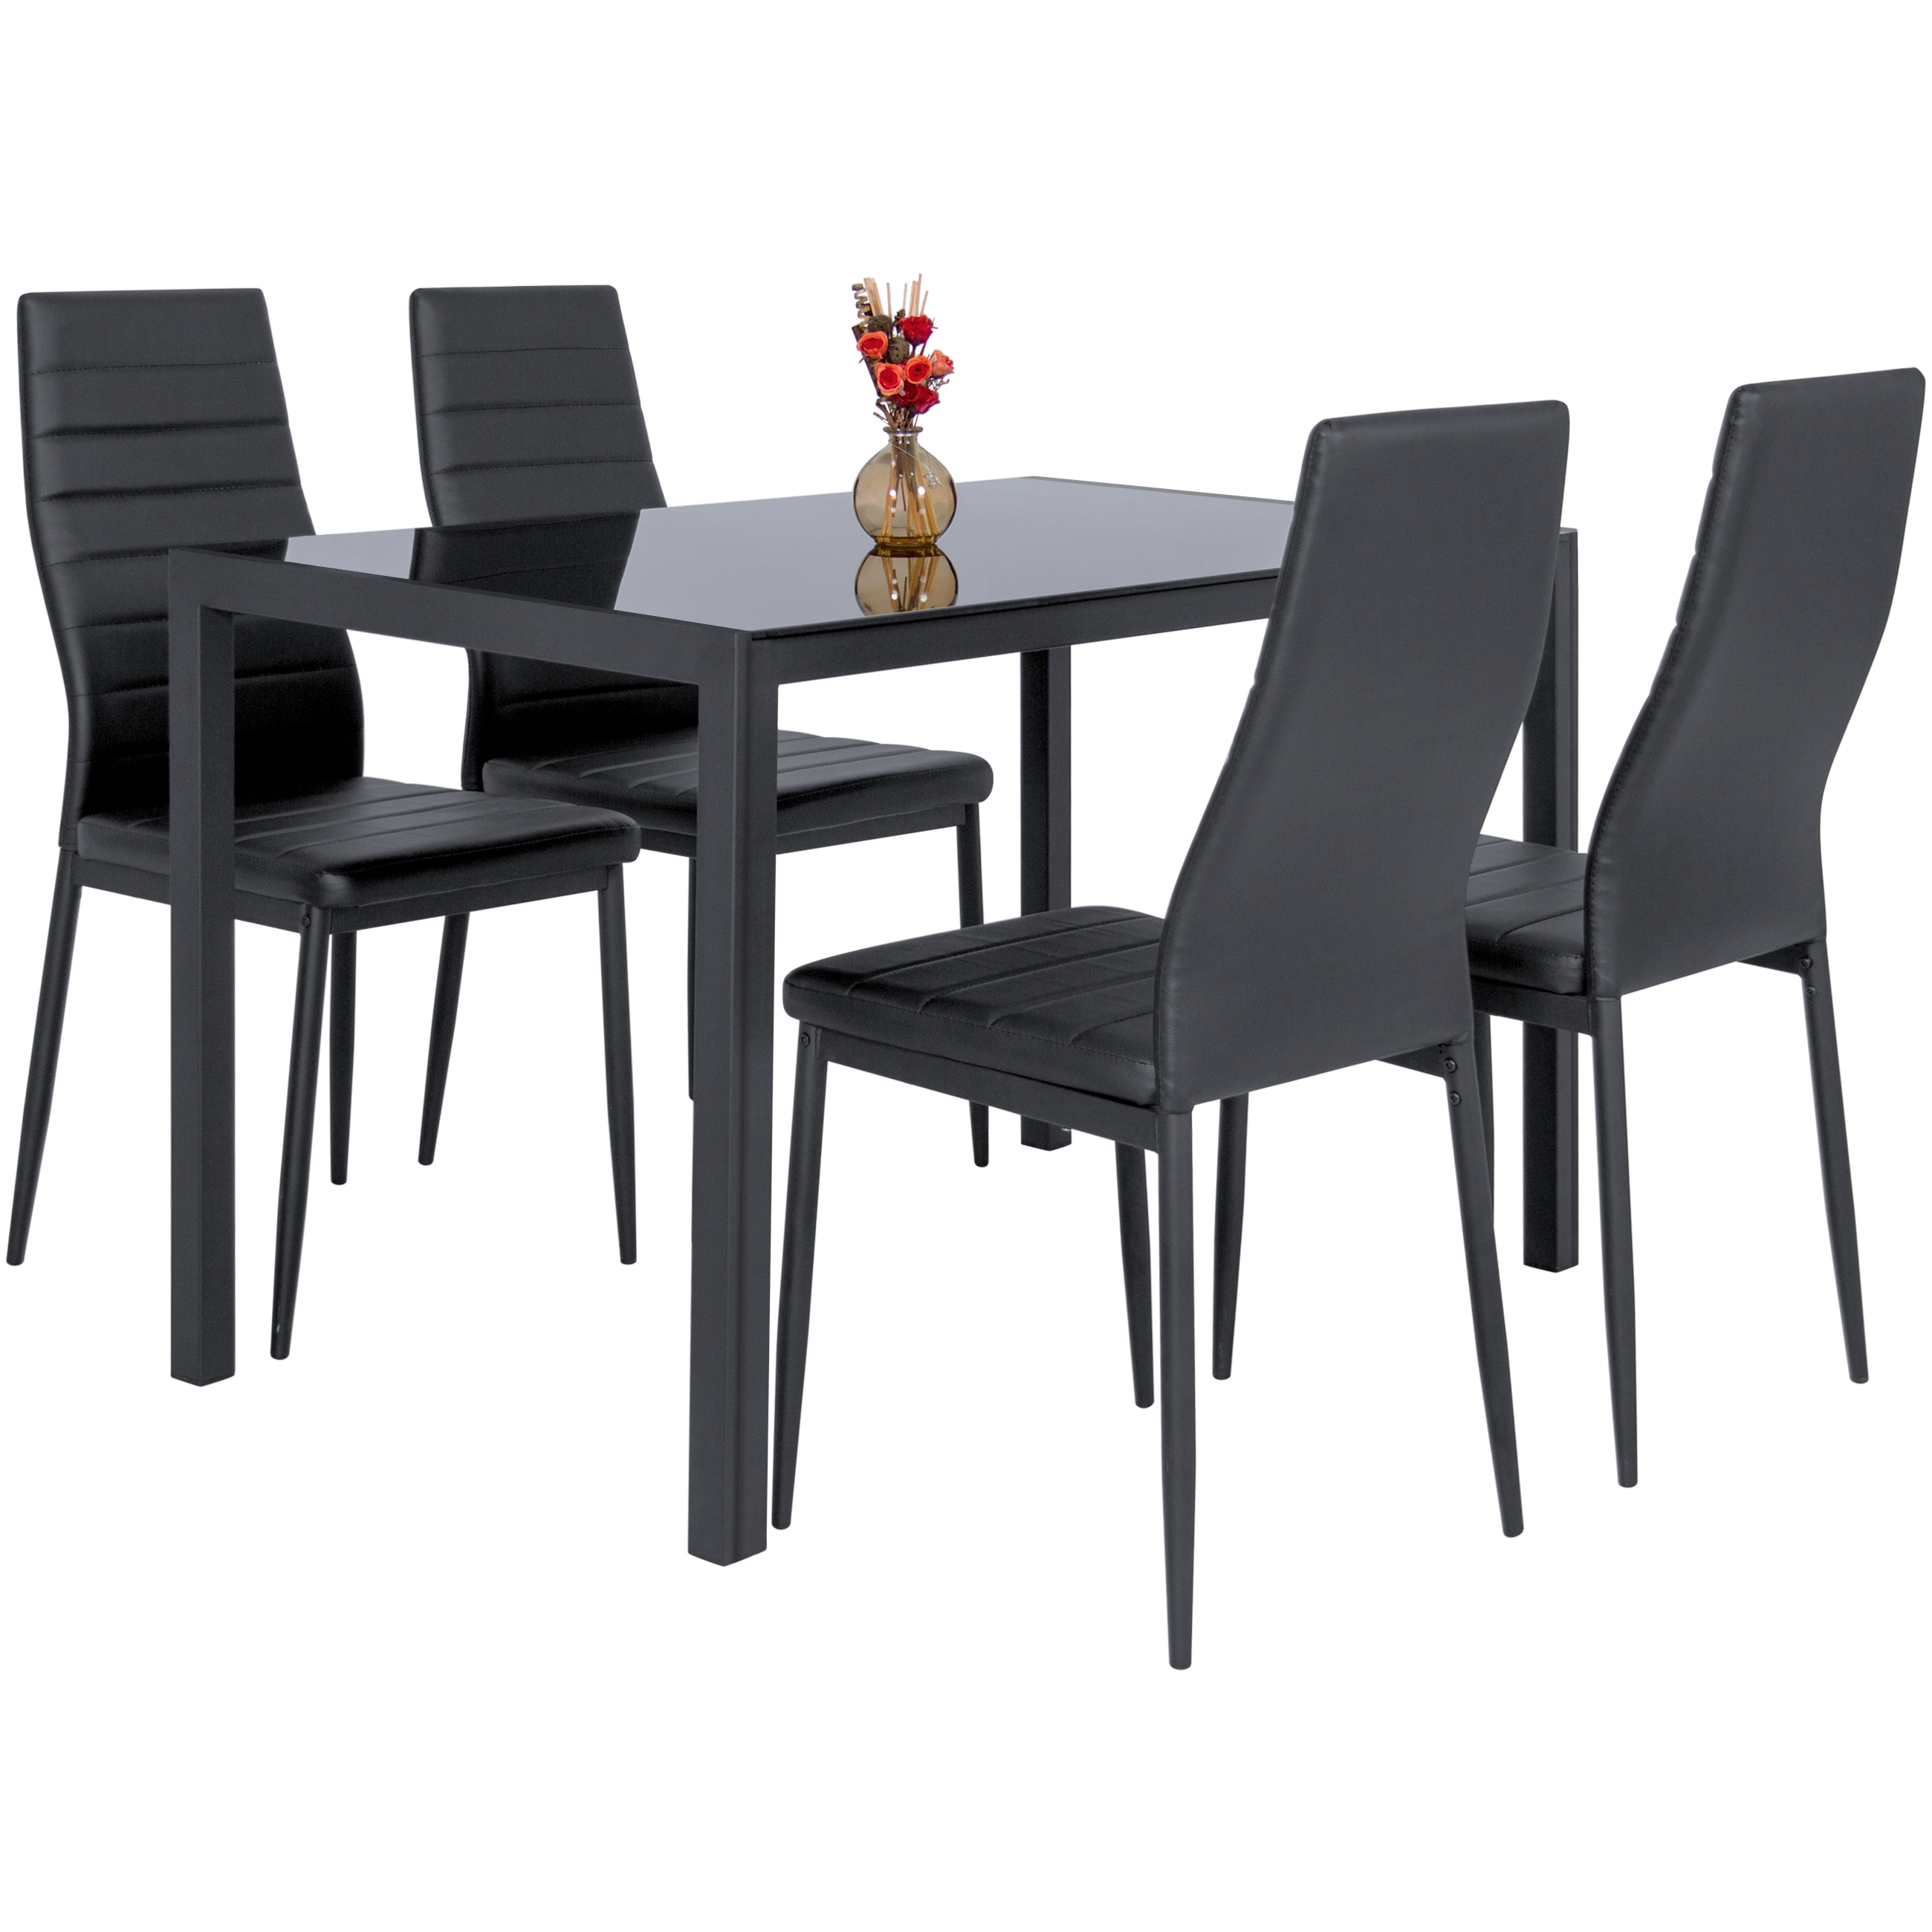 Best choice products 5 piece kitchen dining table set w glass top and 4 leather chairs dinette black walmart com